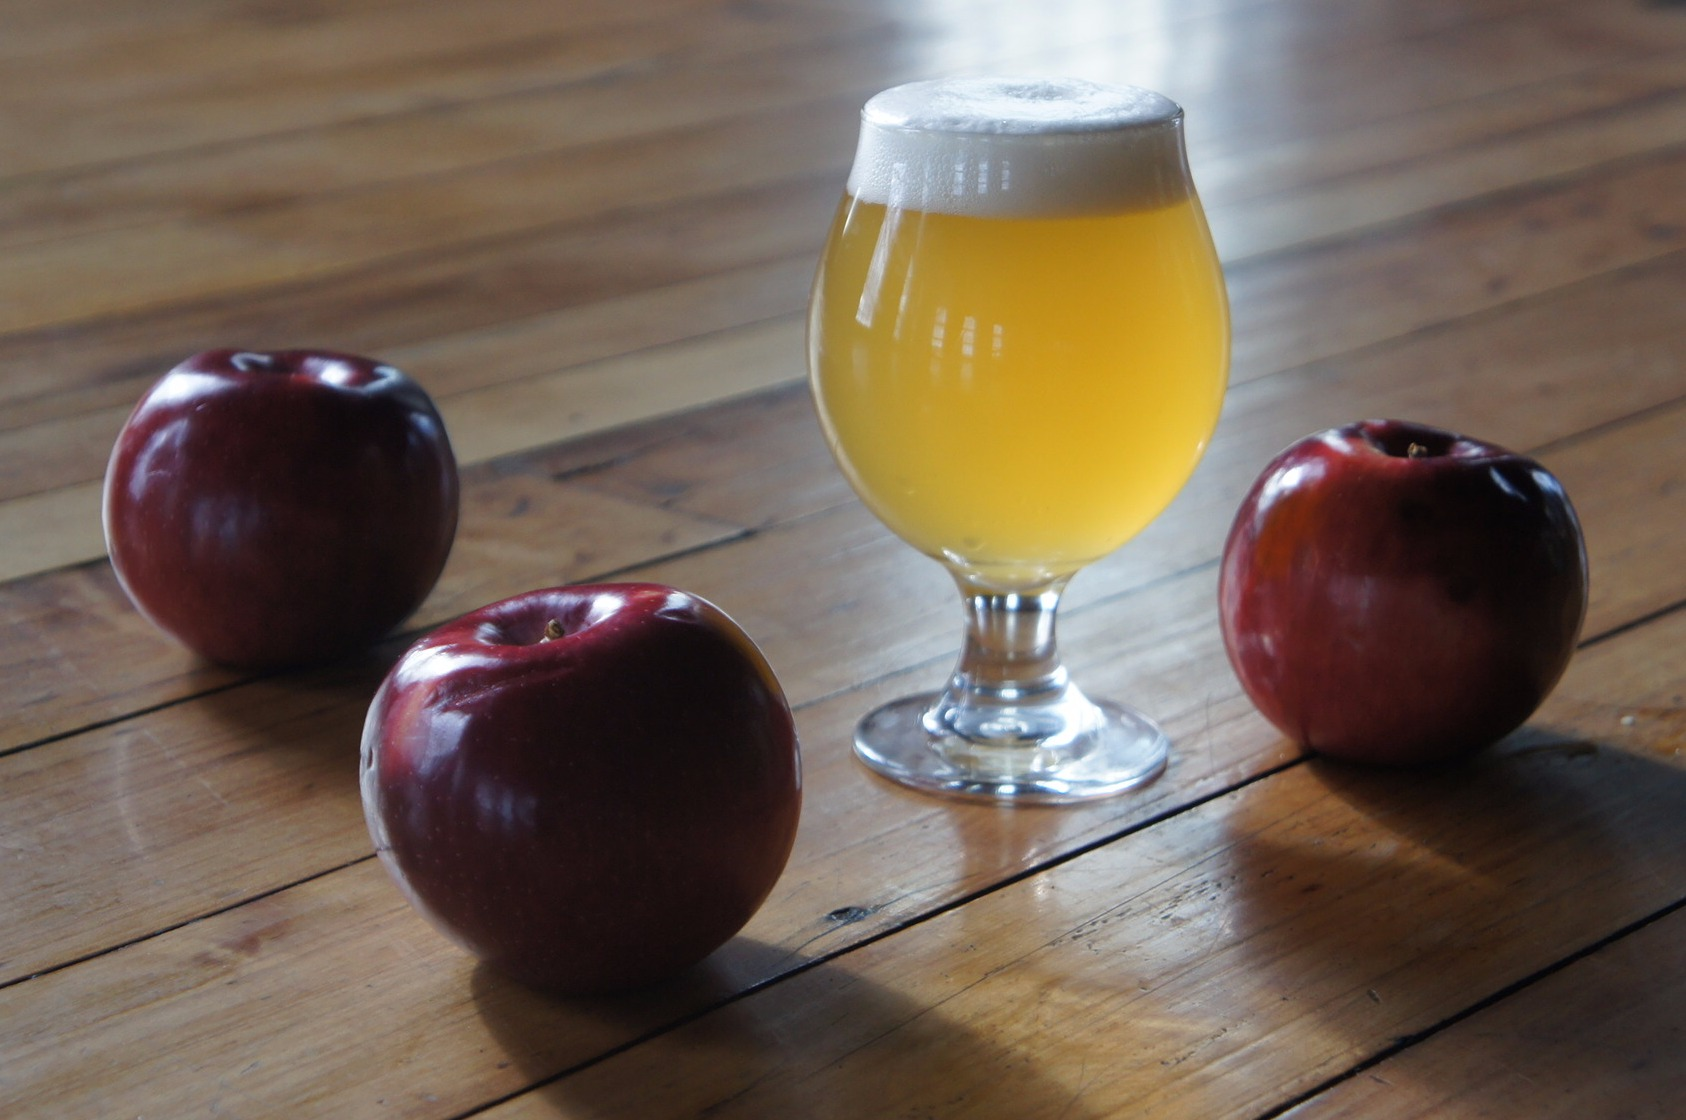 A Farmhouse Ale made with local apple cider and fermented with Brettanomyces